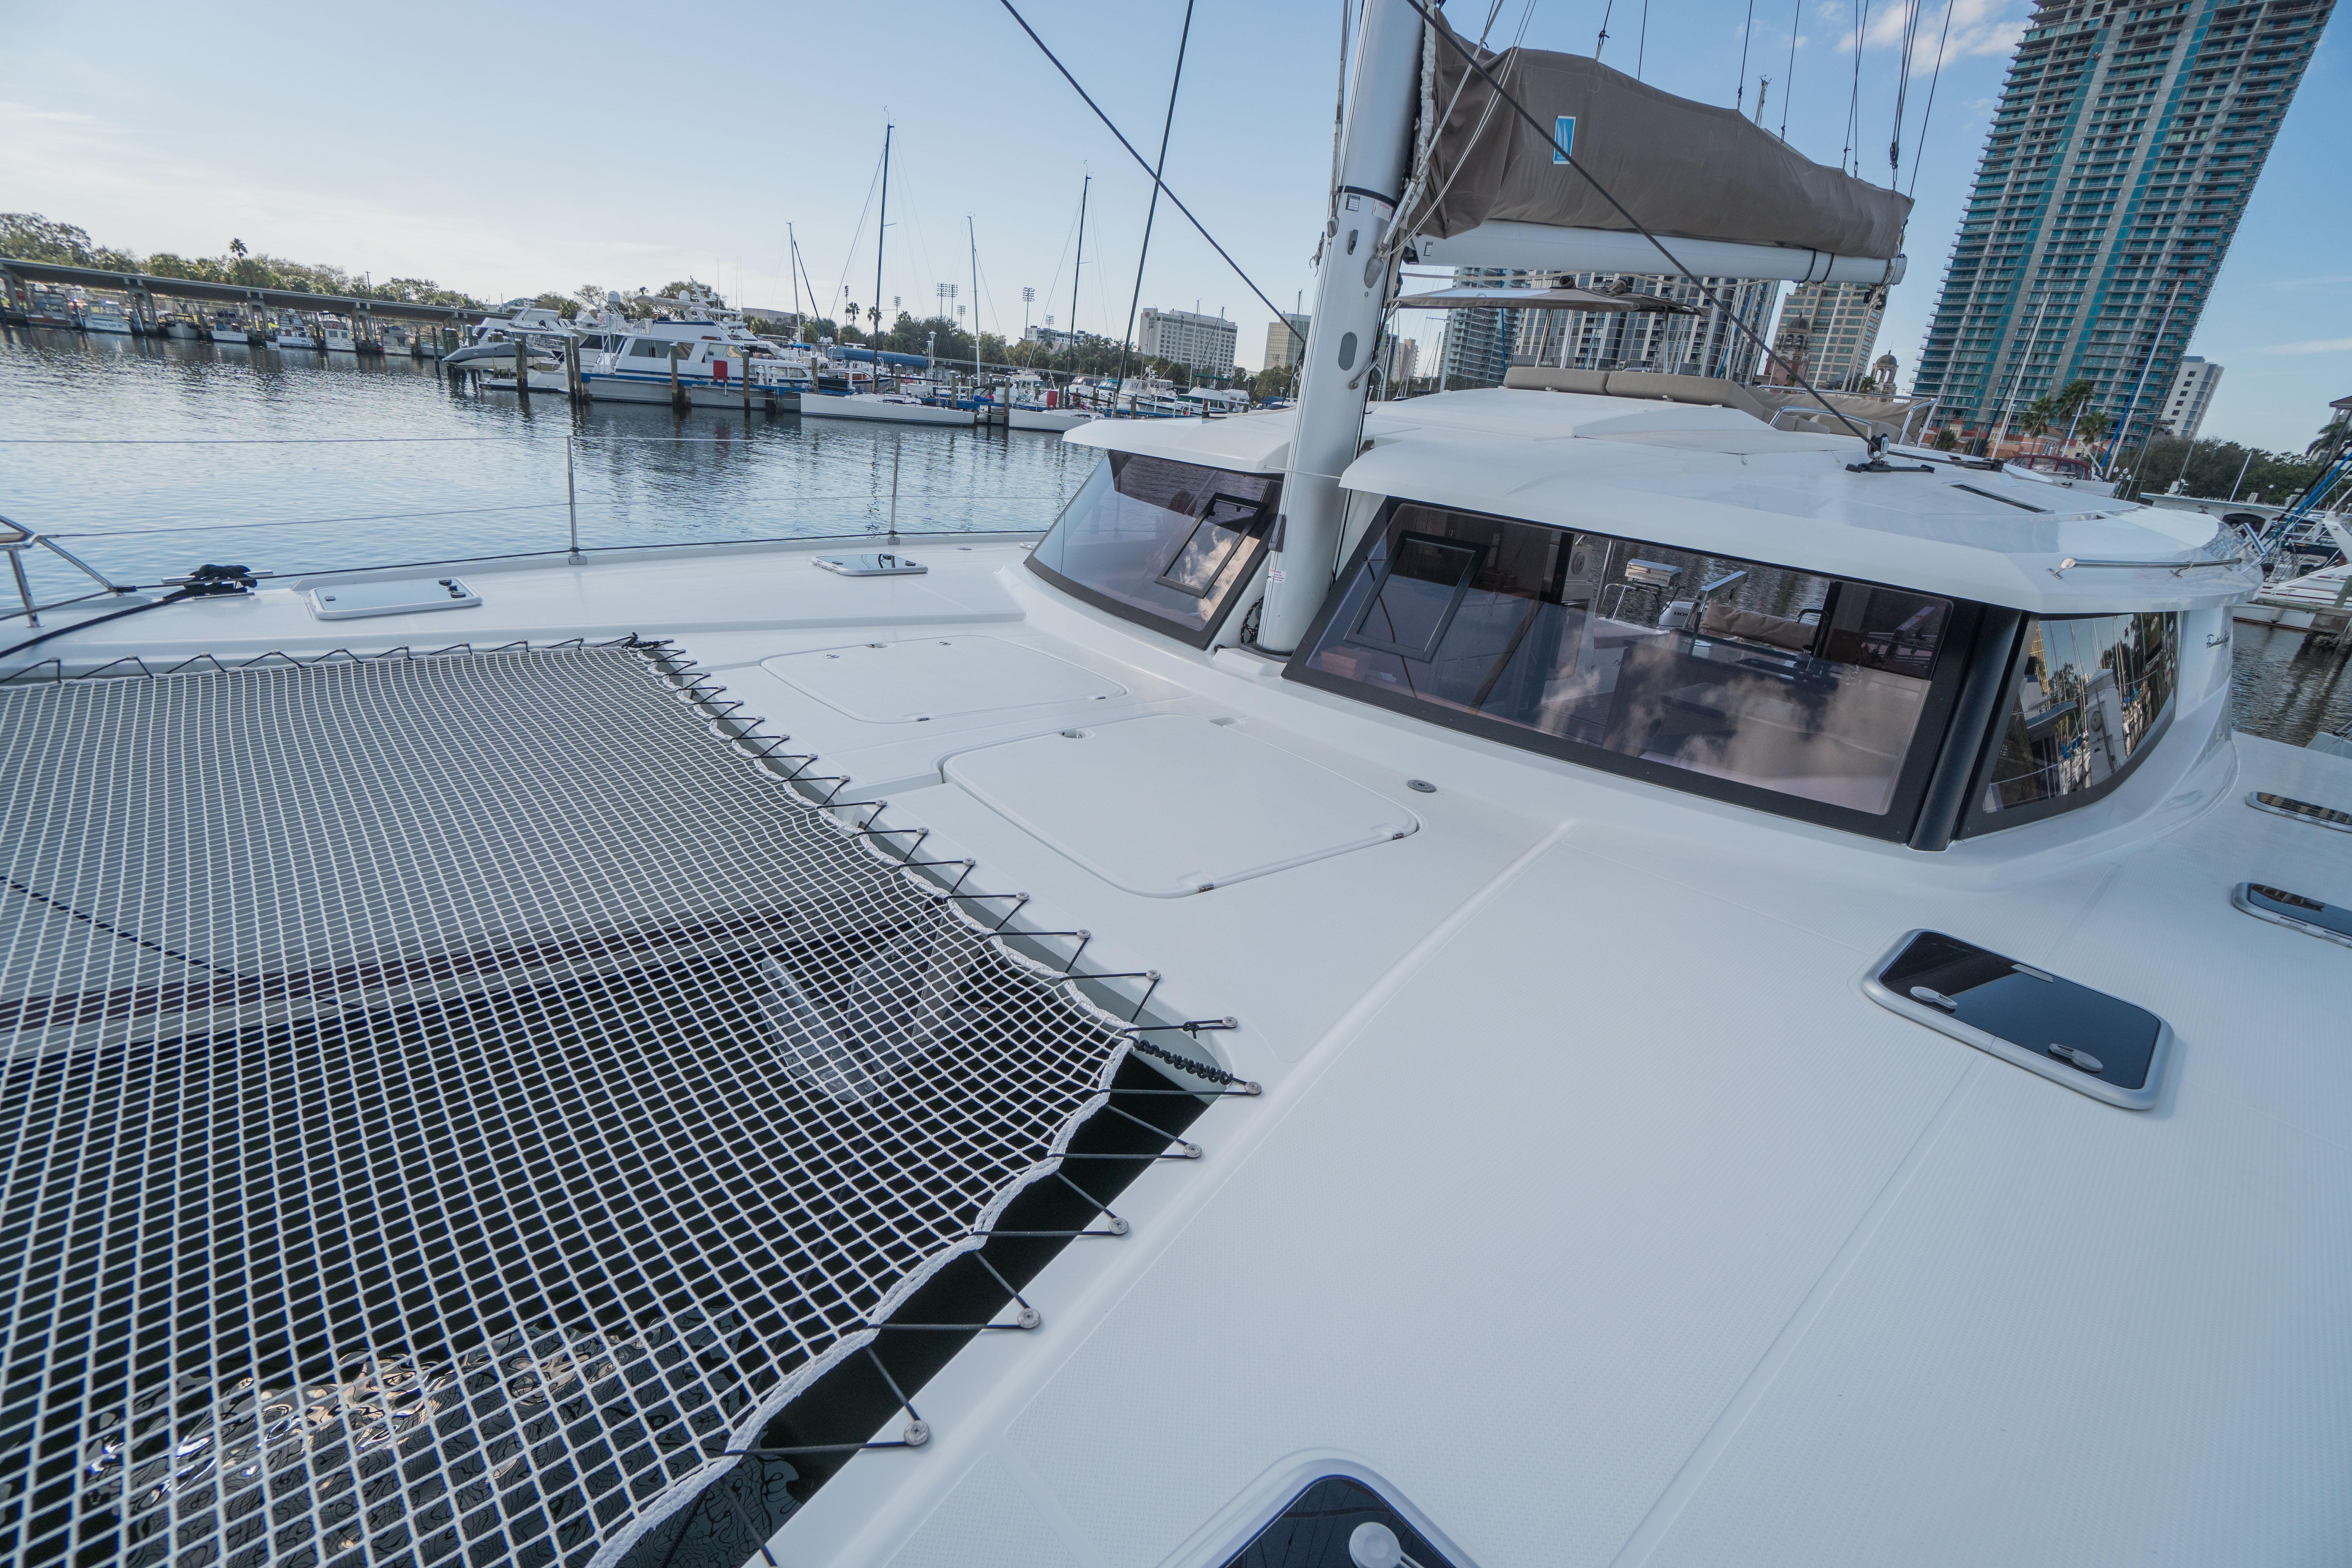 44 Fountaine Pajot 2016 St. Petersburg, Florida Sold on 2018-05-02 by Denison Yacht Sales